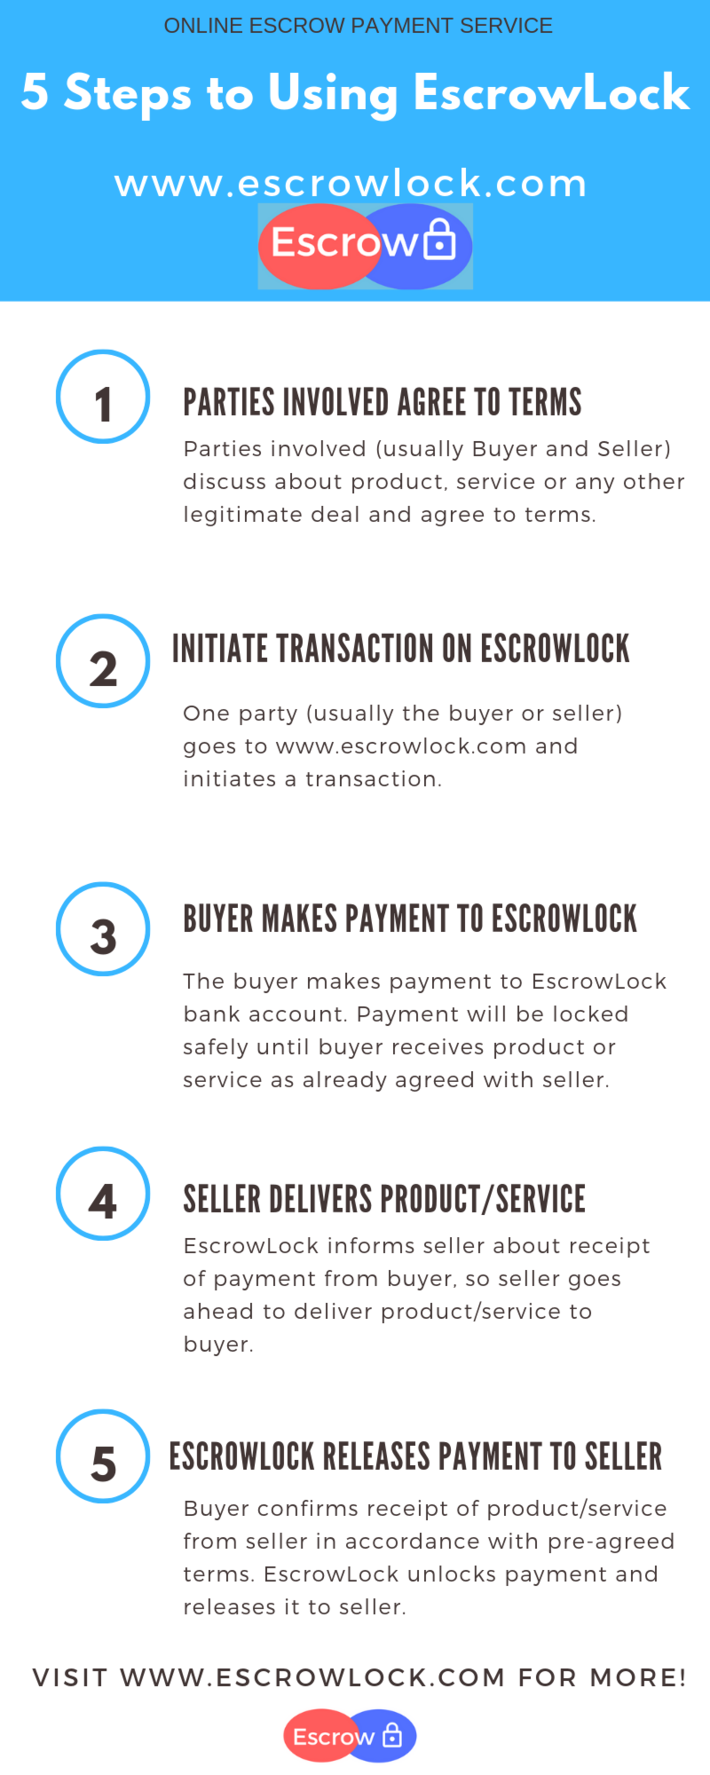 Escrow Services in Nigeria - 5 Steps to Using EscrowLock